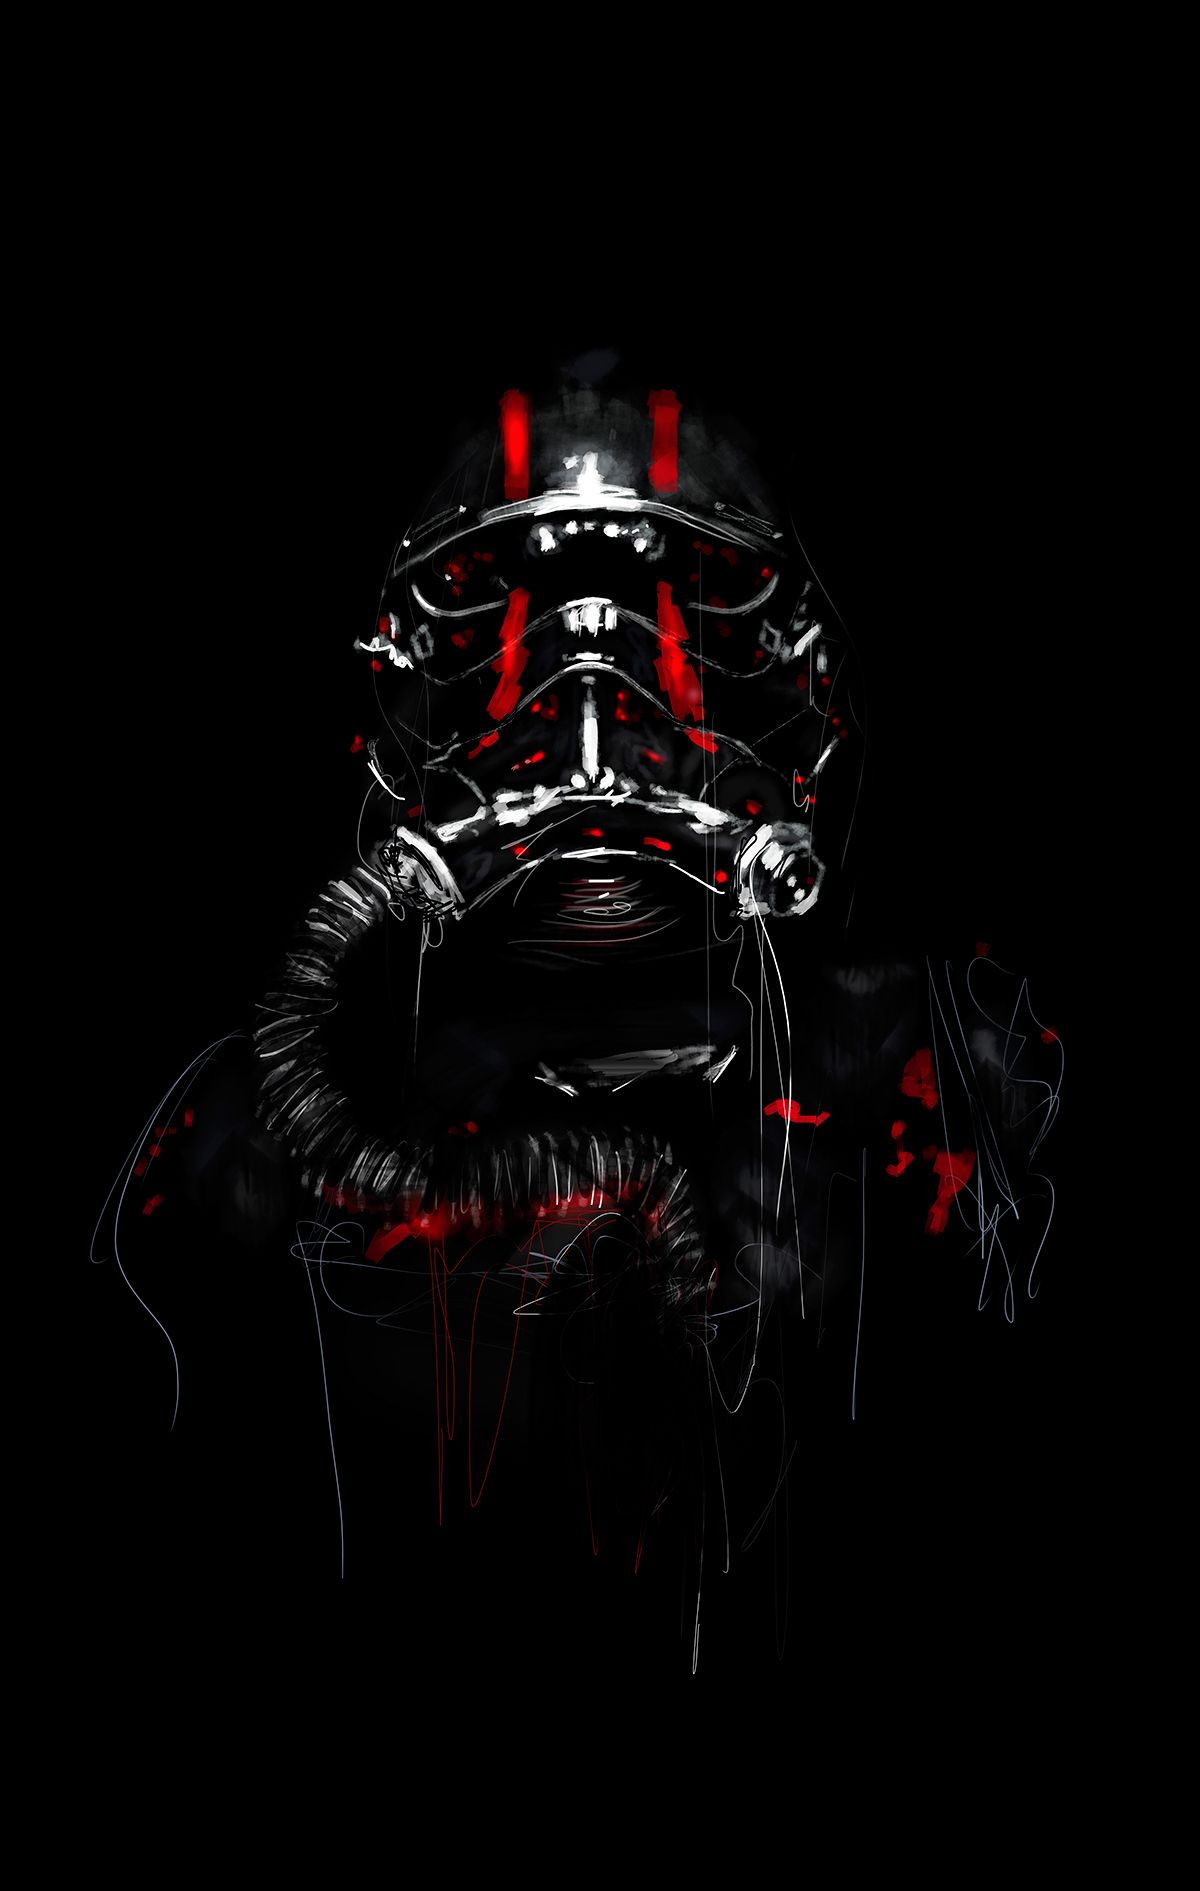 Star Wars Portraits On Behance Tiepilot Starwars Tiefighter Star Wars Poster Star Wars Images Star Wars Art